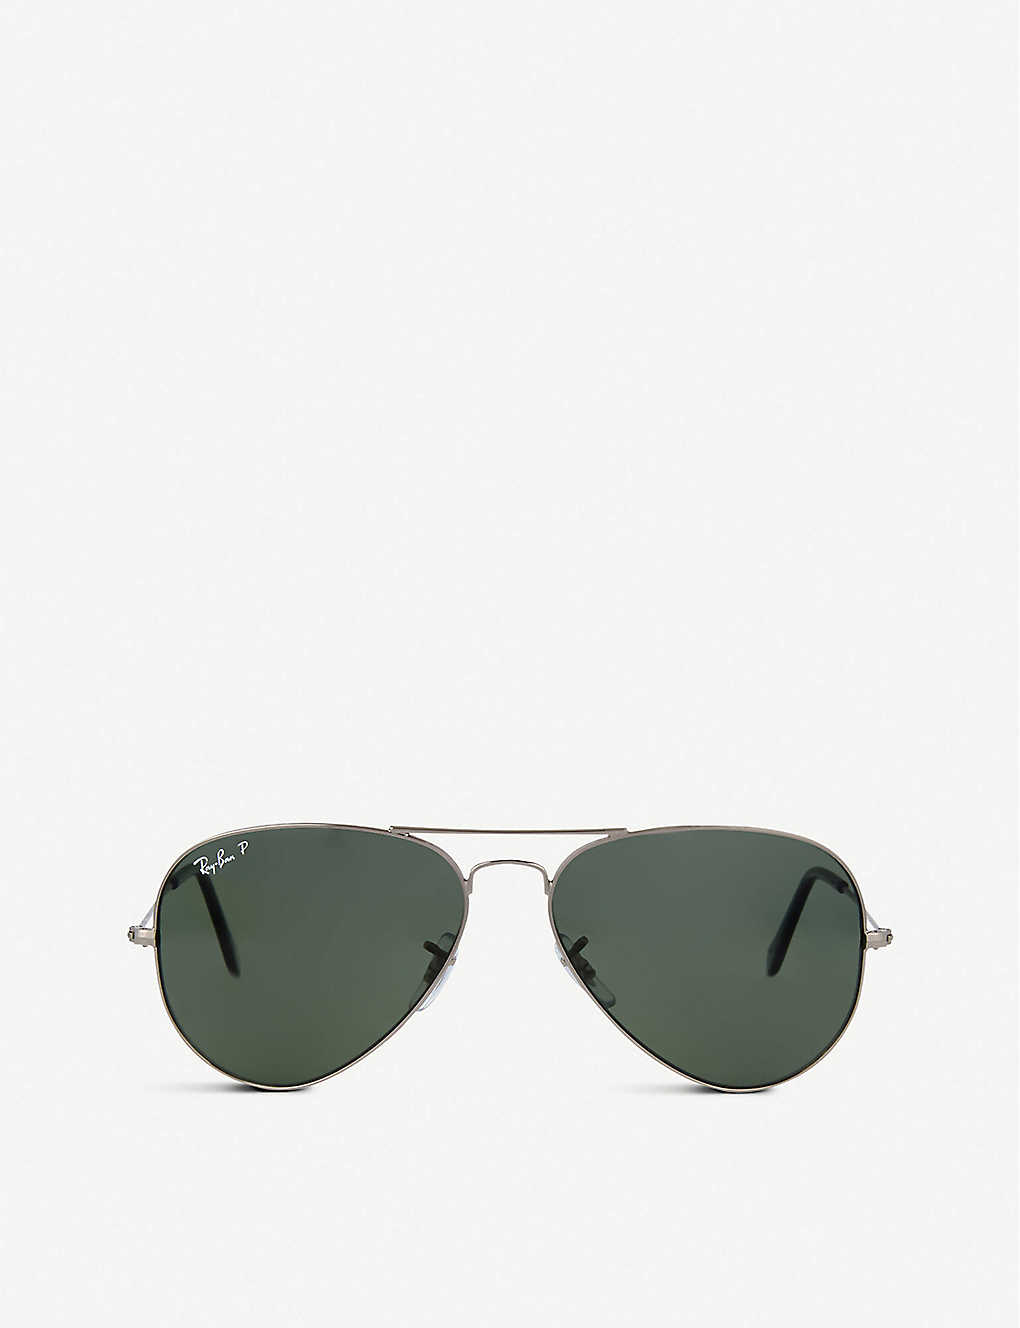 9c404025a RAY-BAN - Original aviator gunmetal-frame sunglasses RB3025 58 ...